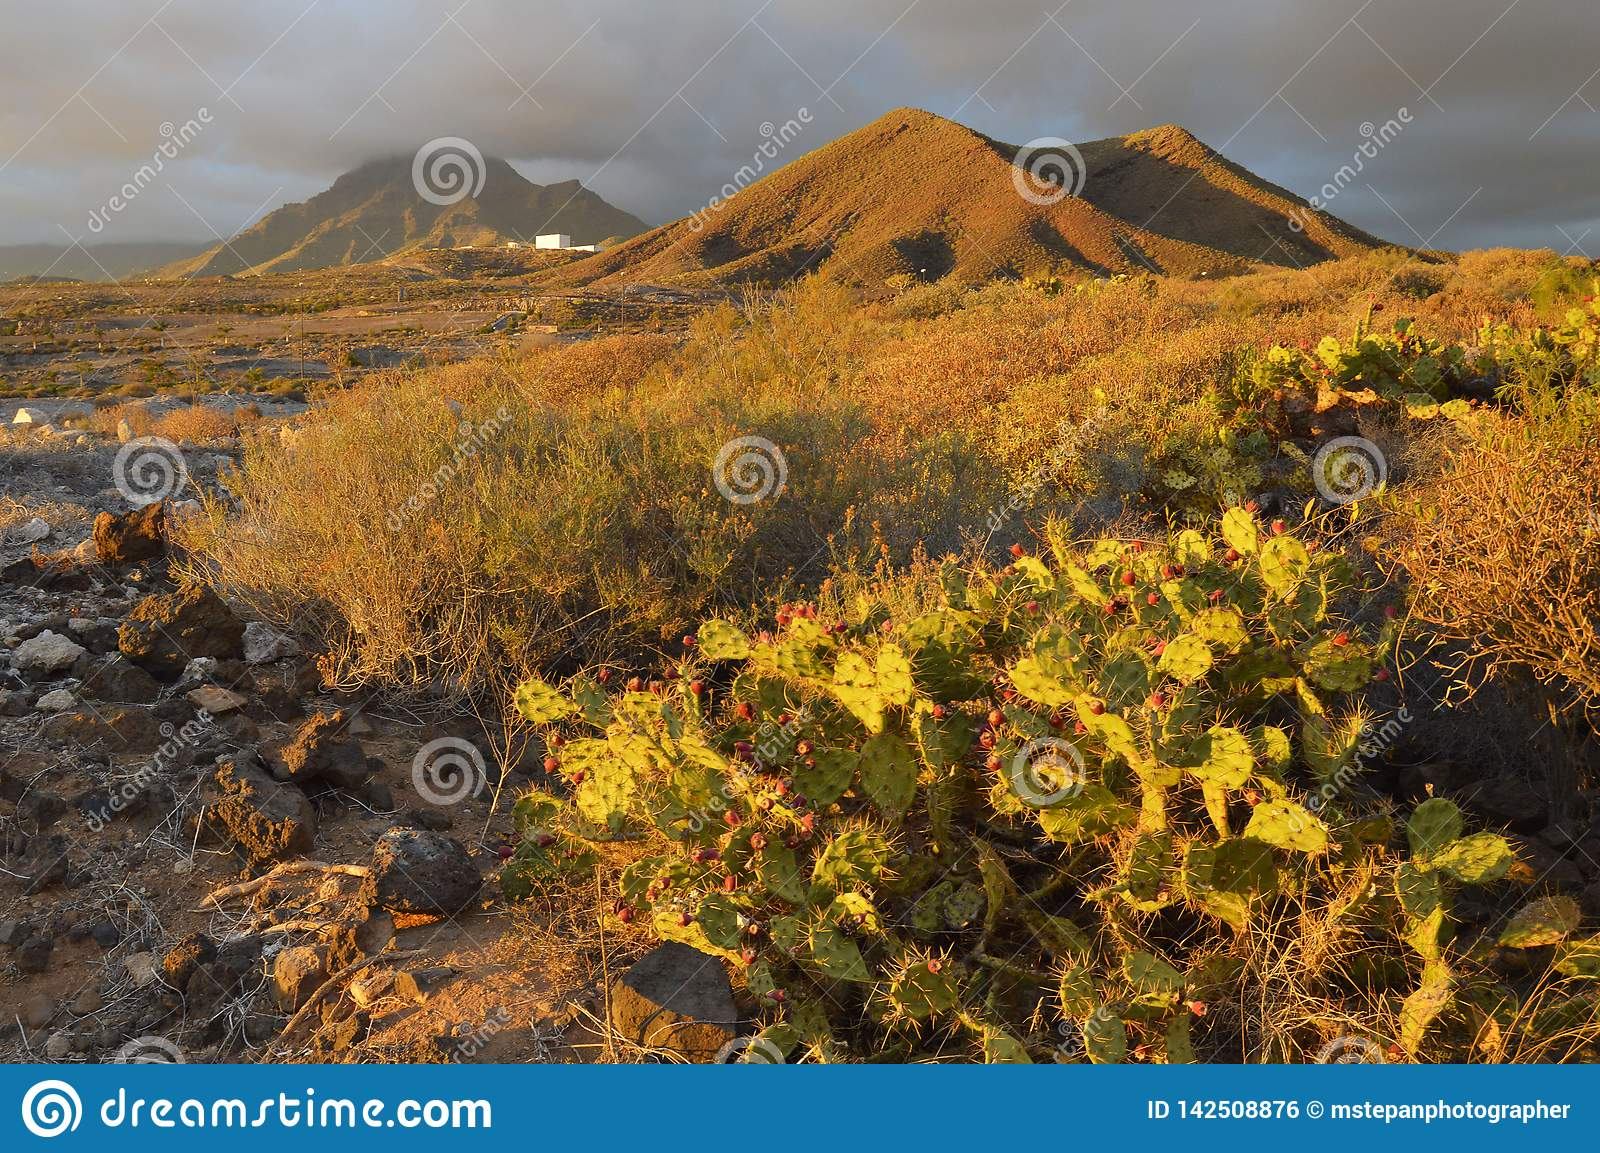 Volcanic landscape with cactus plants Tenerife Canary Islands